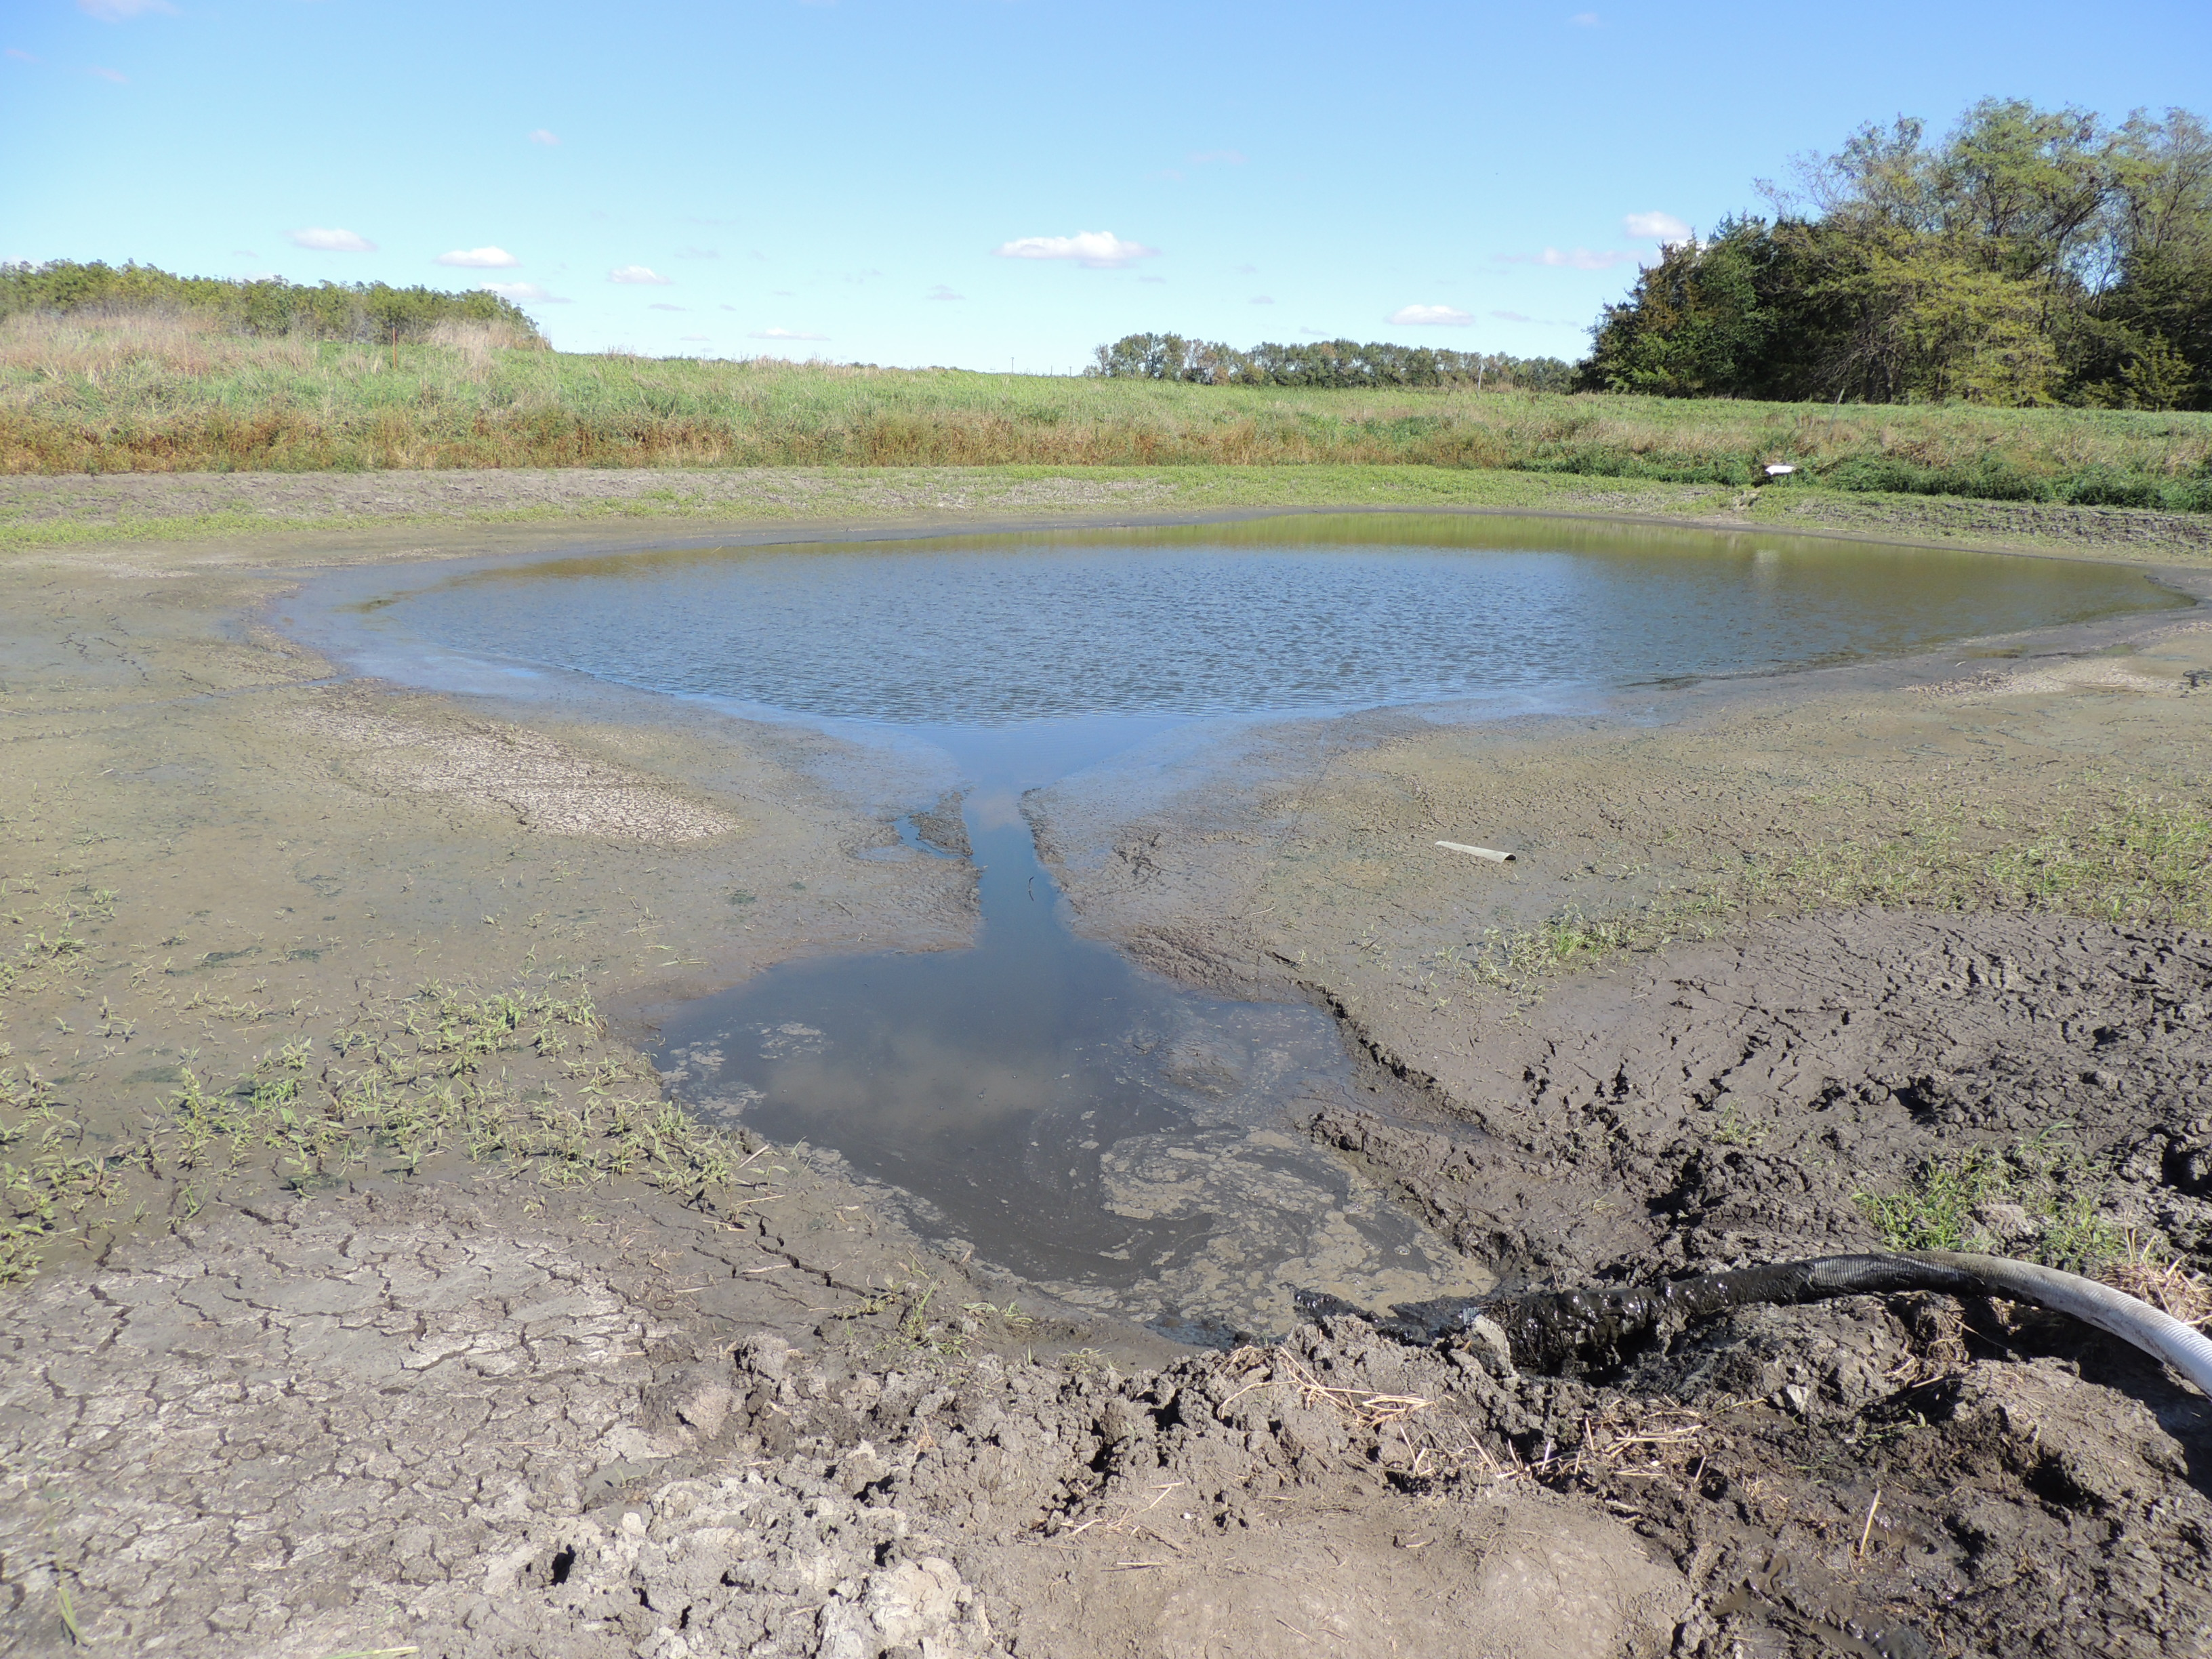 photo of the Haskell Ag Lab's swine lagoon during the dewatering process